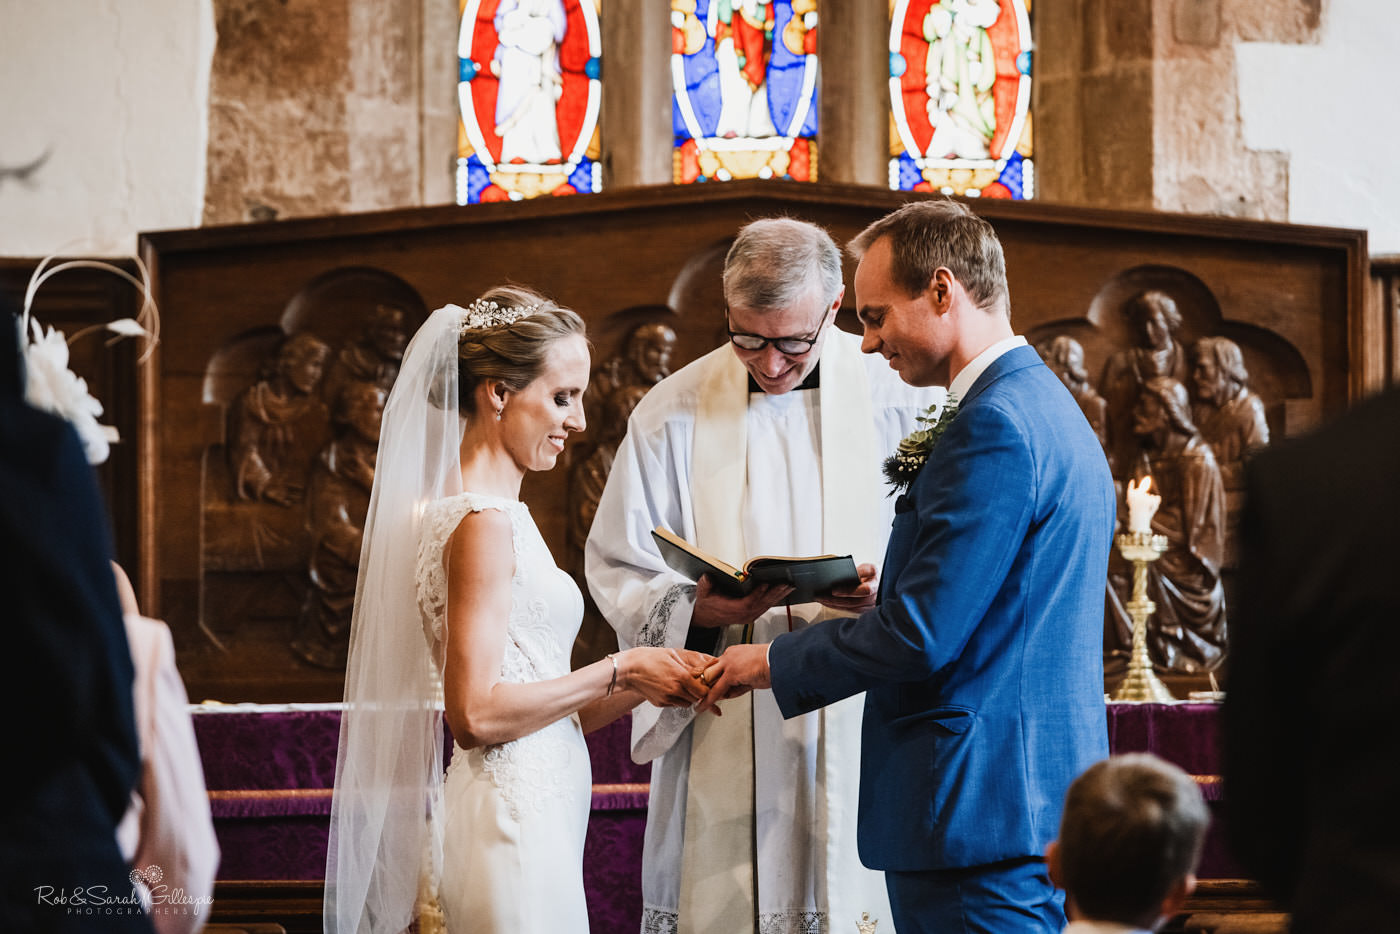 Wedding service at St Kenelm's church in Romsley, Worcestershire